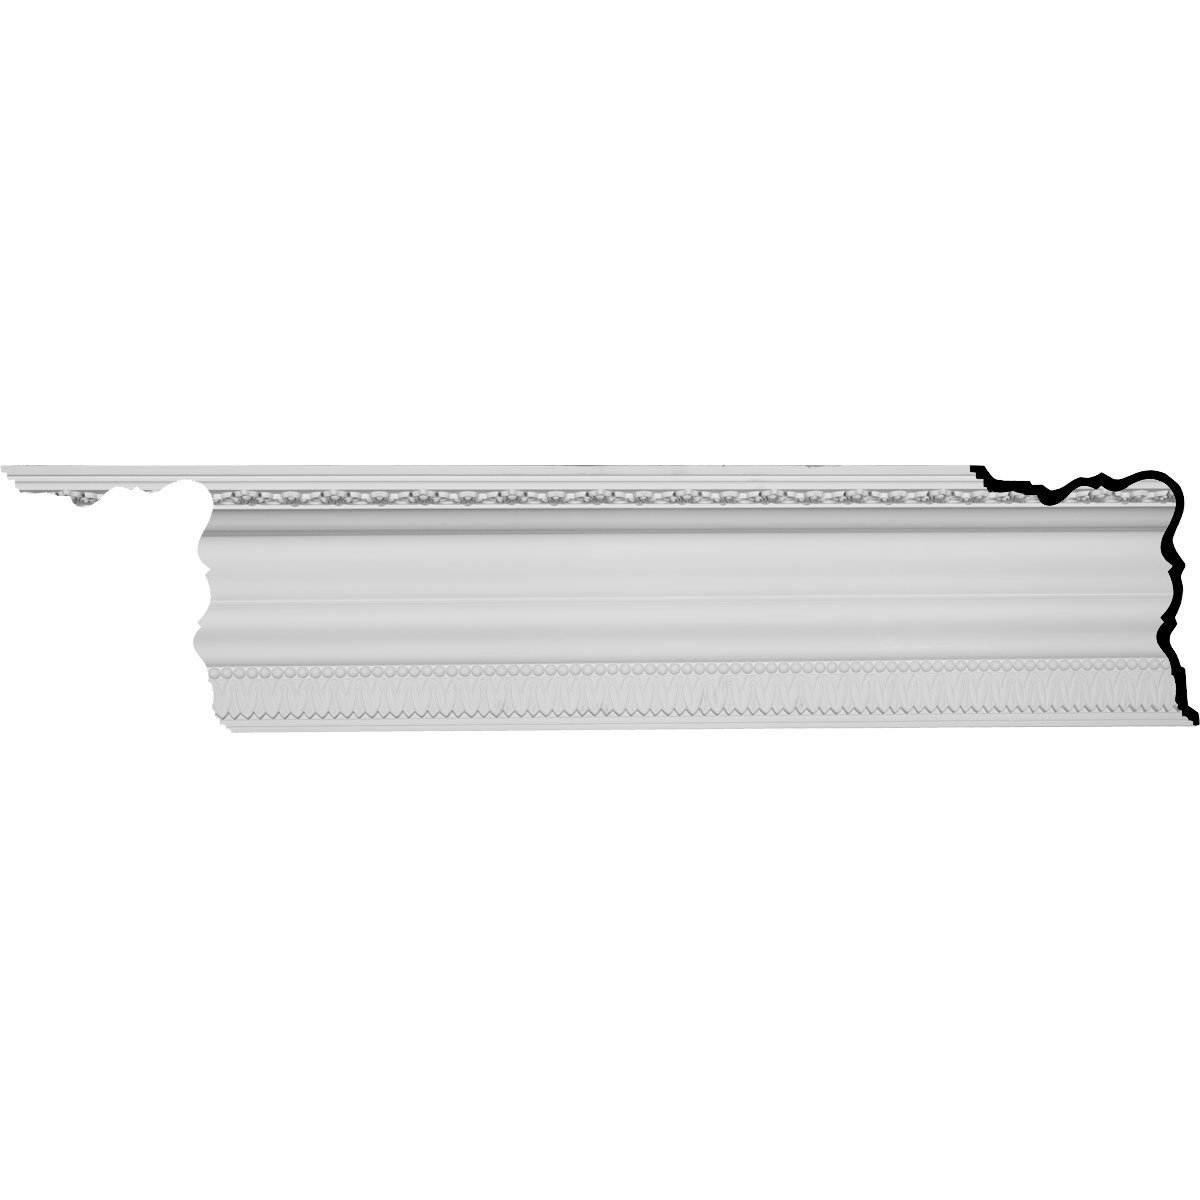 Ekena Millwork MLD11X15X18CG-CASE-8 11-5/8'' H x 15-3/8'' P x 18-3/4'' F x 96-1/8'' L Coogan Crown Molding with 2'' Repeat (8-Pack)